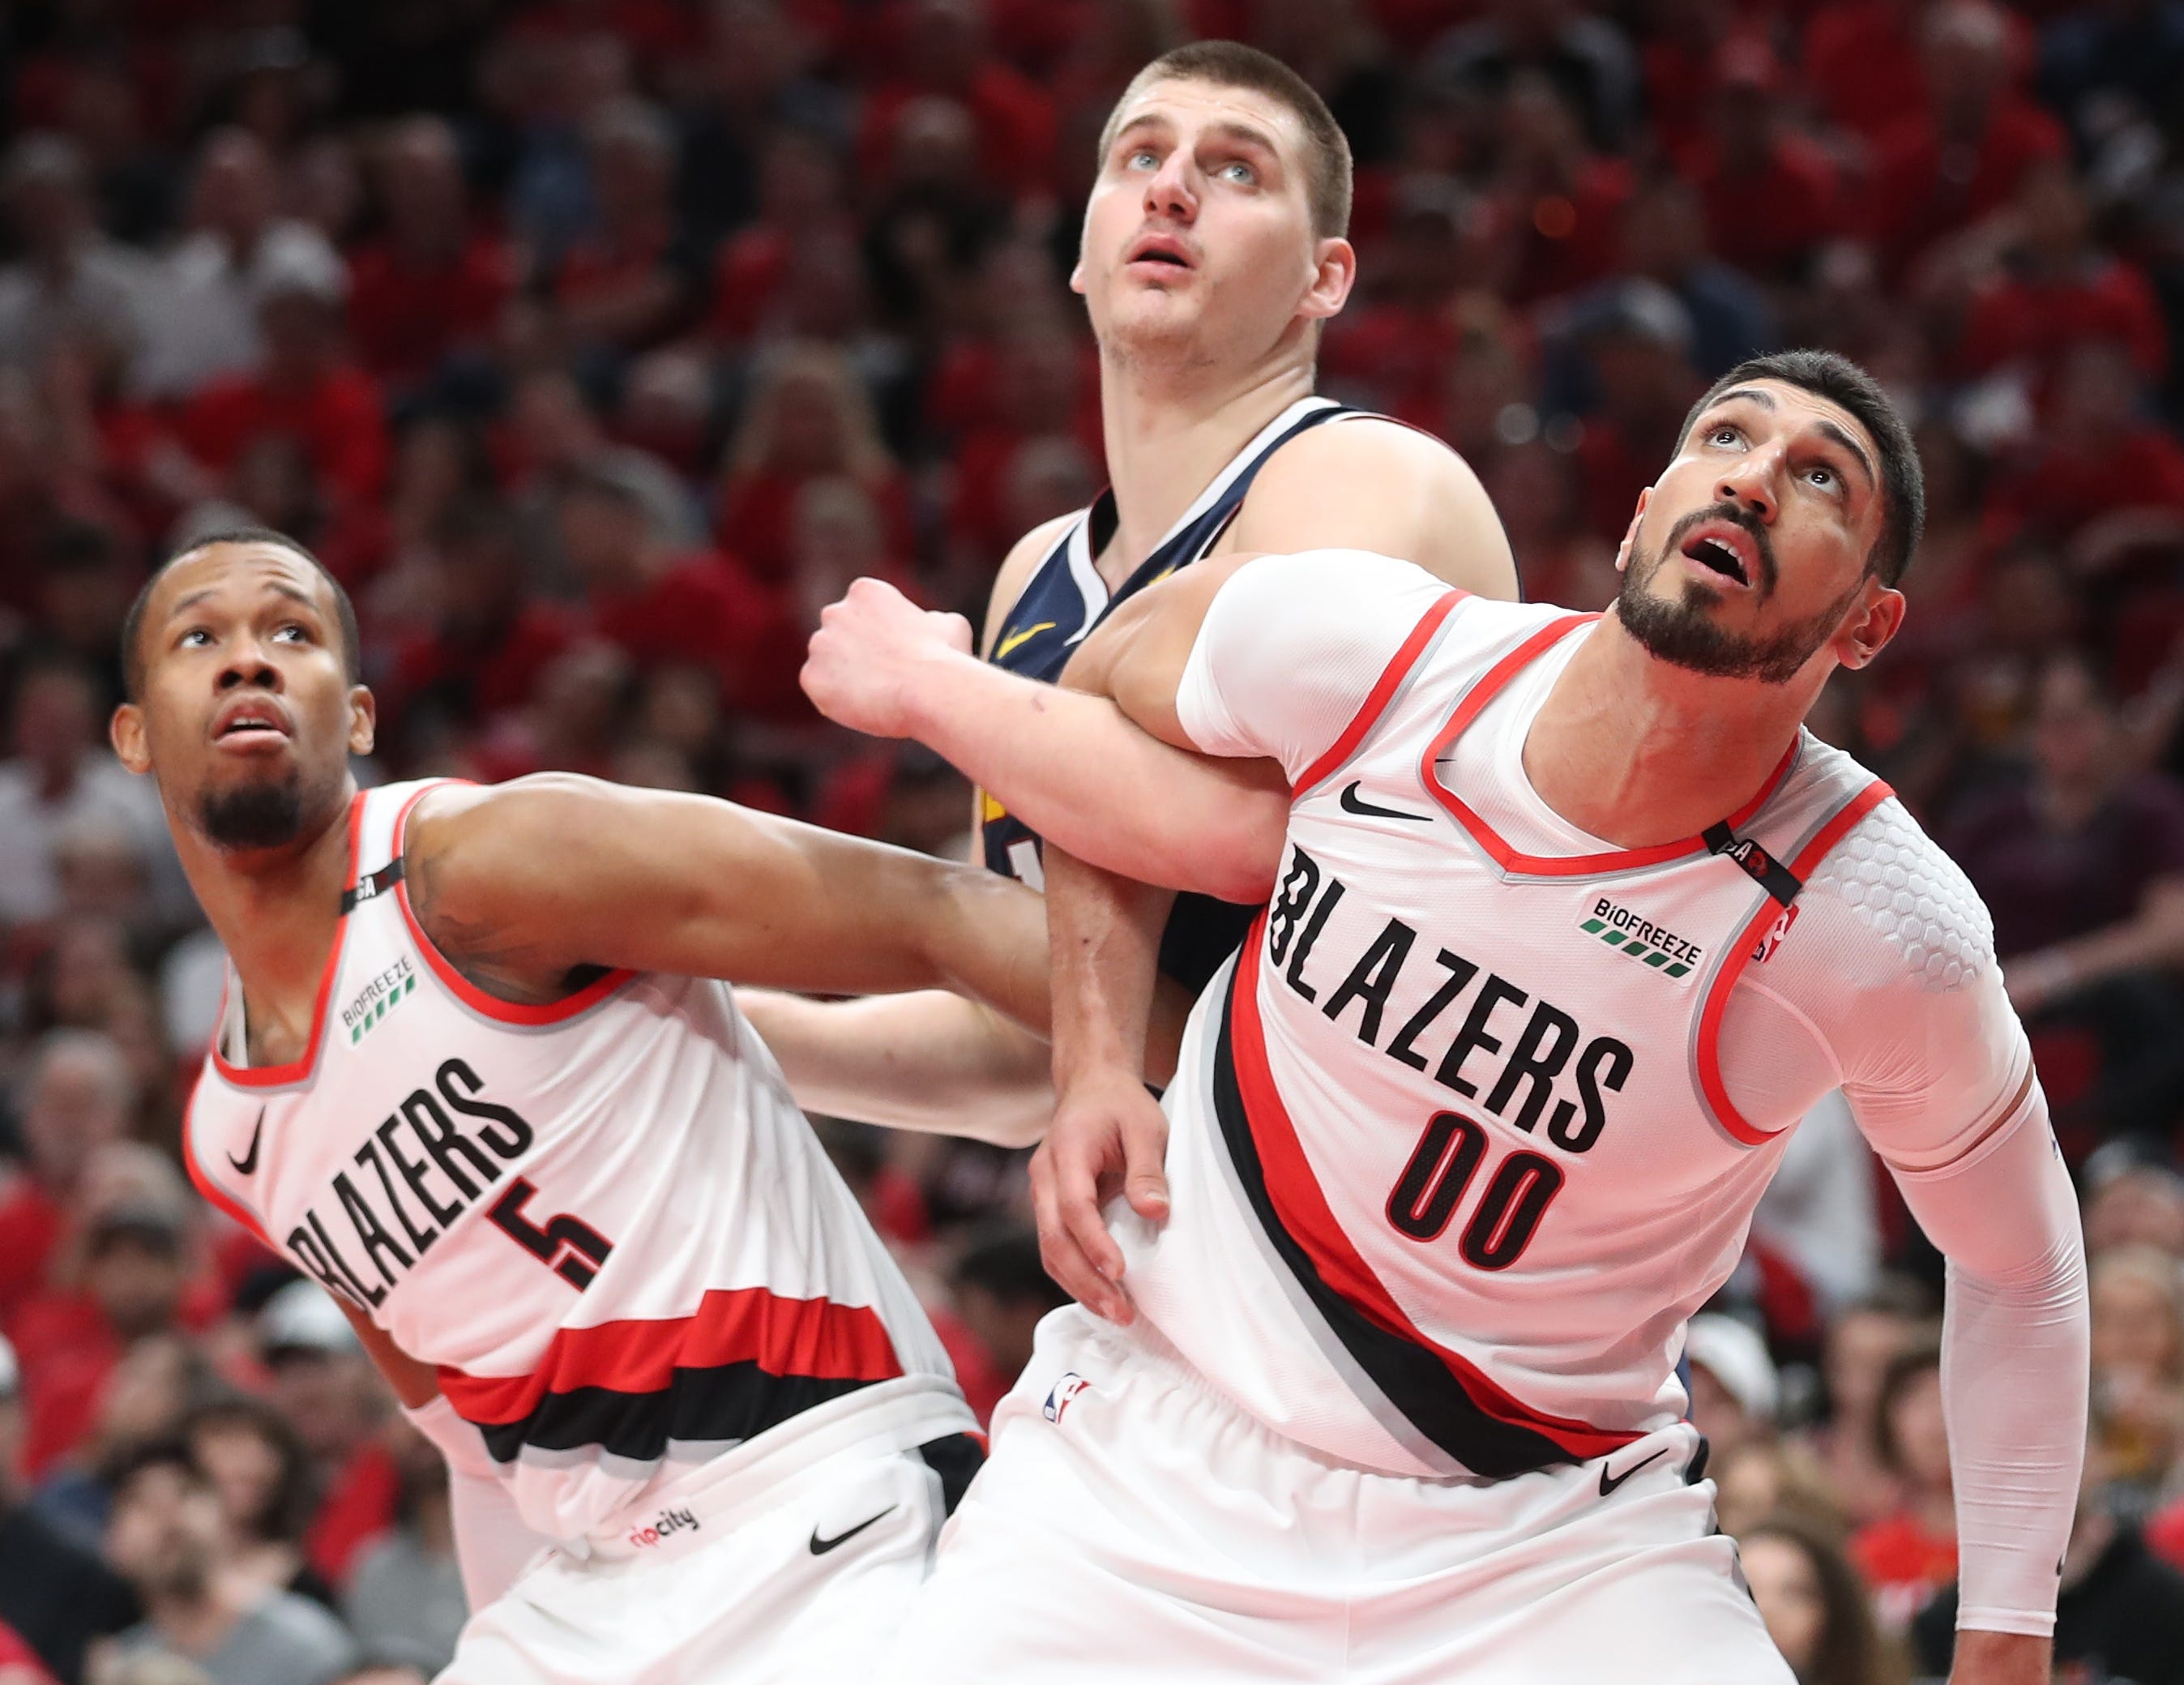 May 5: Blazers defenders Rodney Hood (5) and Enes Kanter (00) try to box out Nuggets center Nikola Jokic (15) during Game 4.